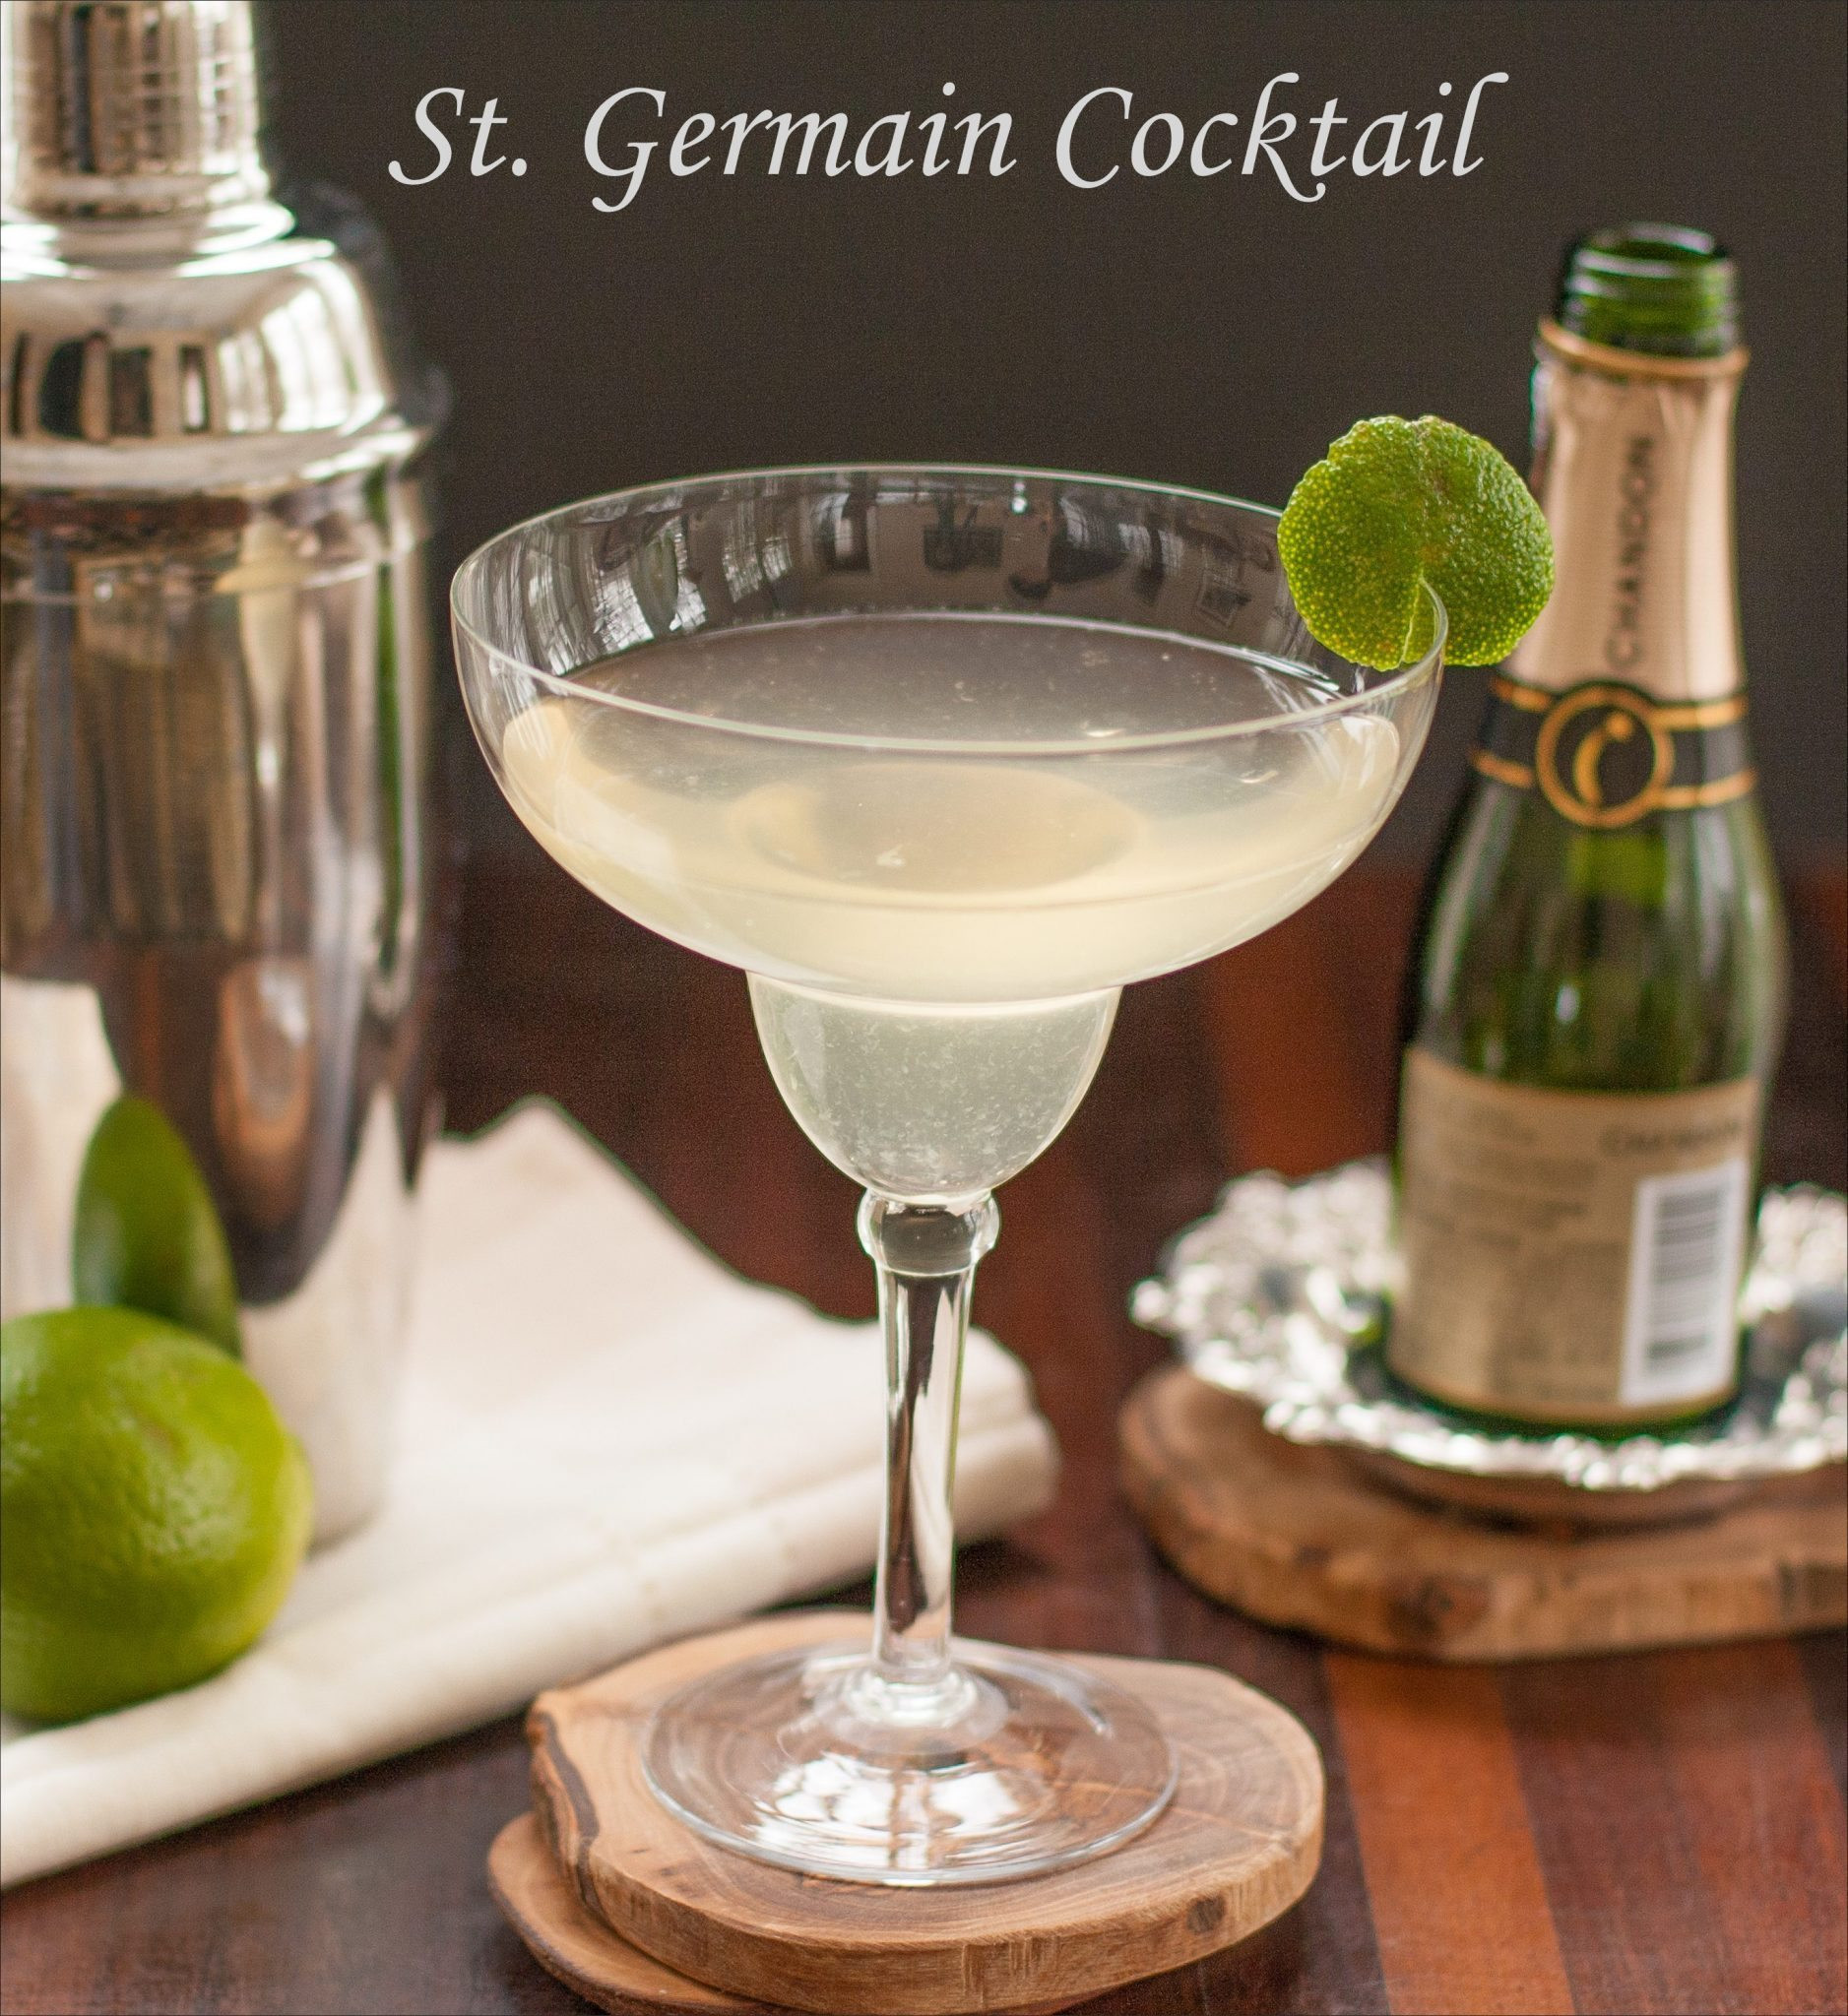 St Germain Cocktails  St Germain Cocktail A Healthy Life For Me